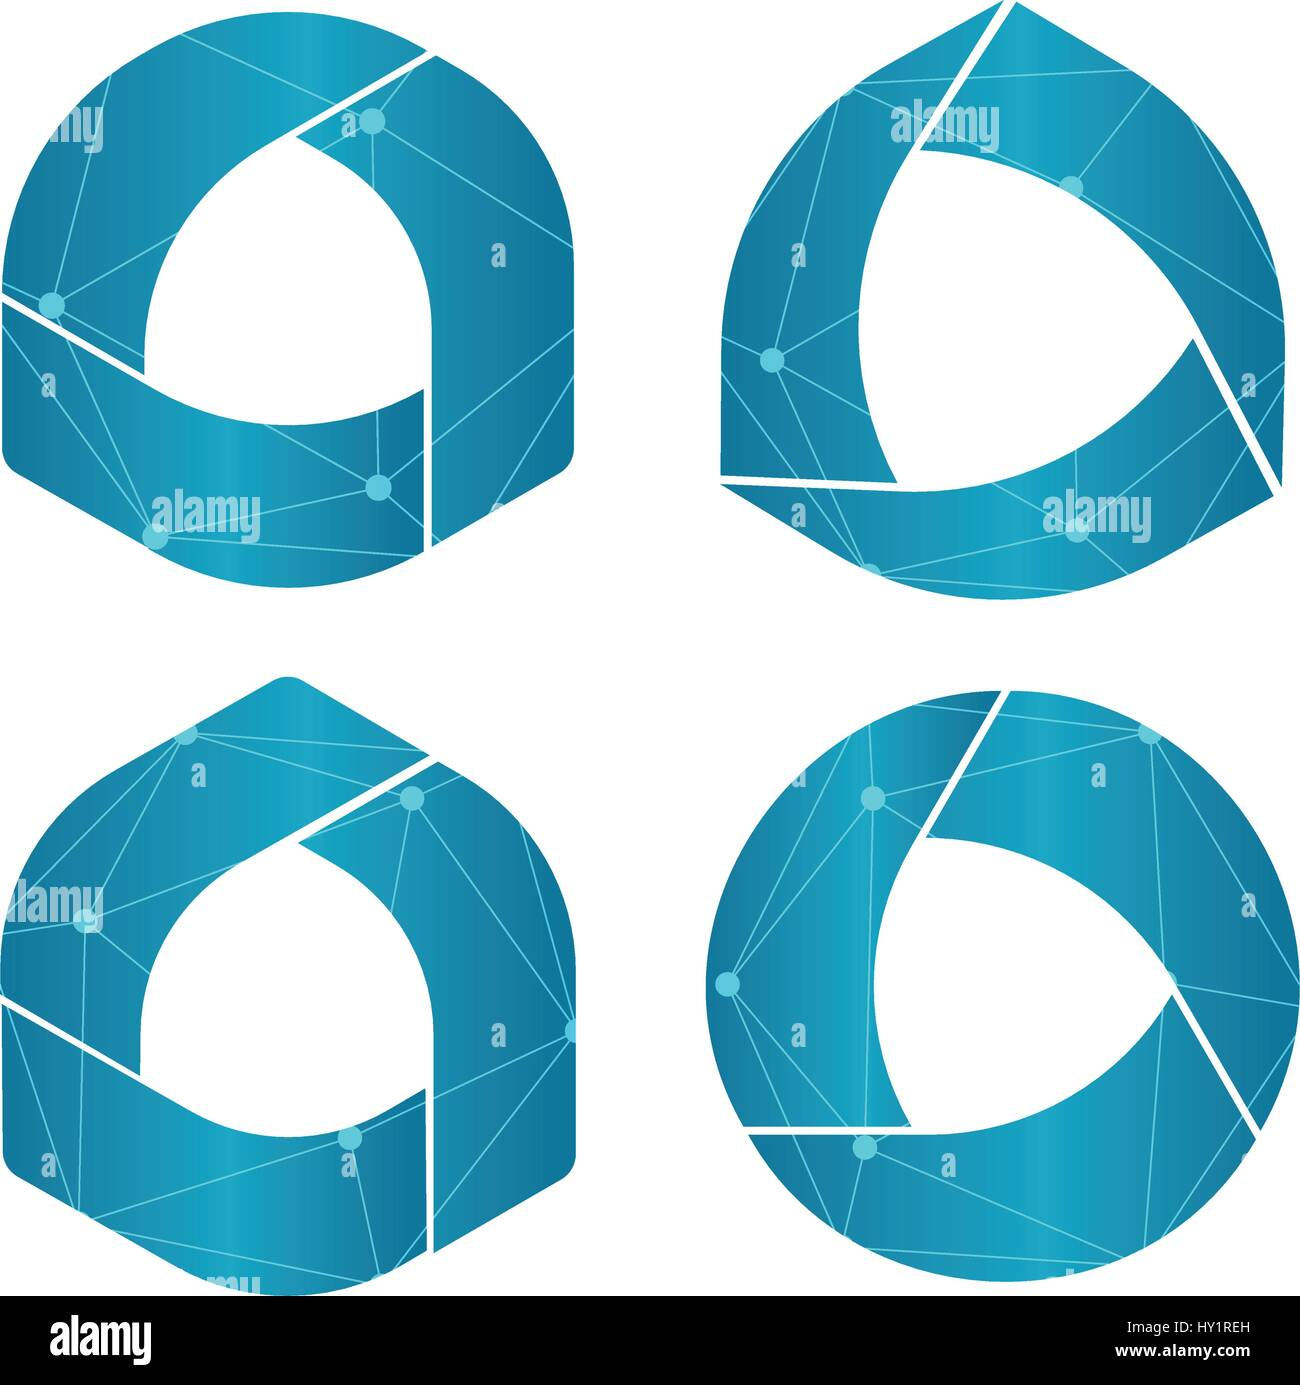 Isolated abstract round shape blue color logo set, geometric circular logotypes collection on white background vector - Stock Image